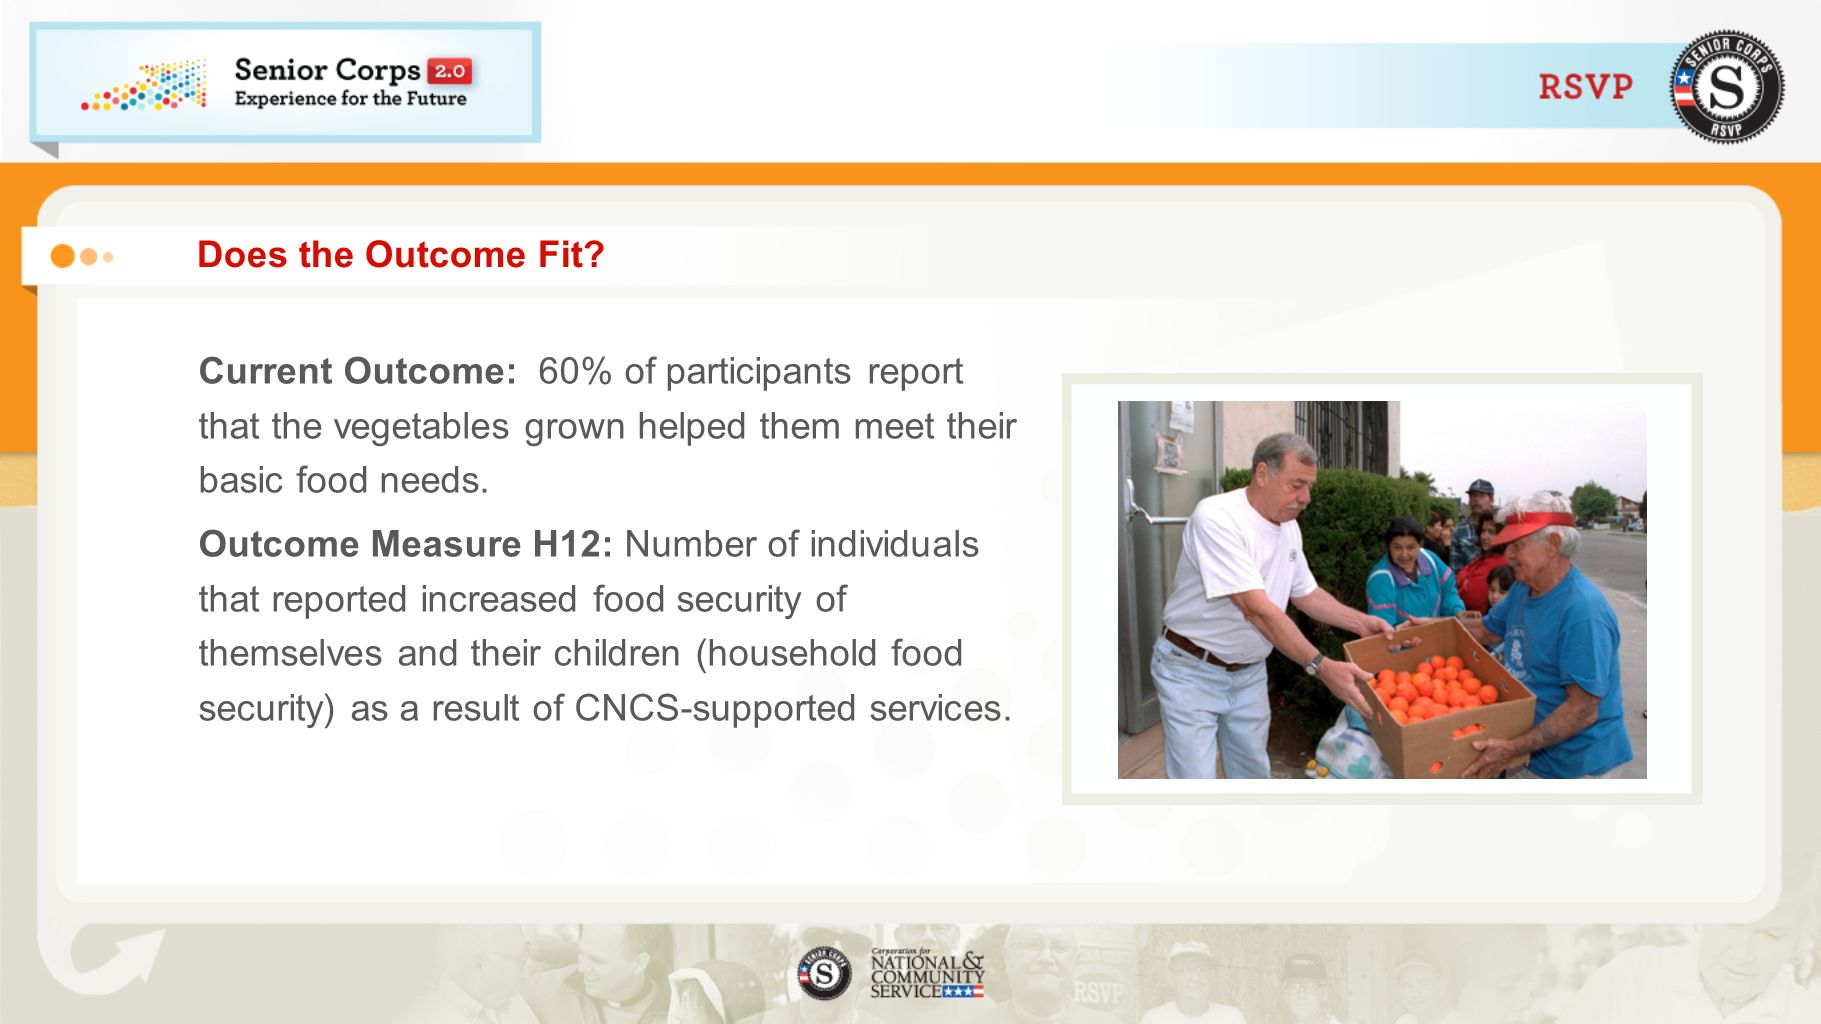 Does the Outcome Fit Current Outcome: 60% of participants report that the vegetables grown helped them meet their basic food needs.